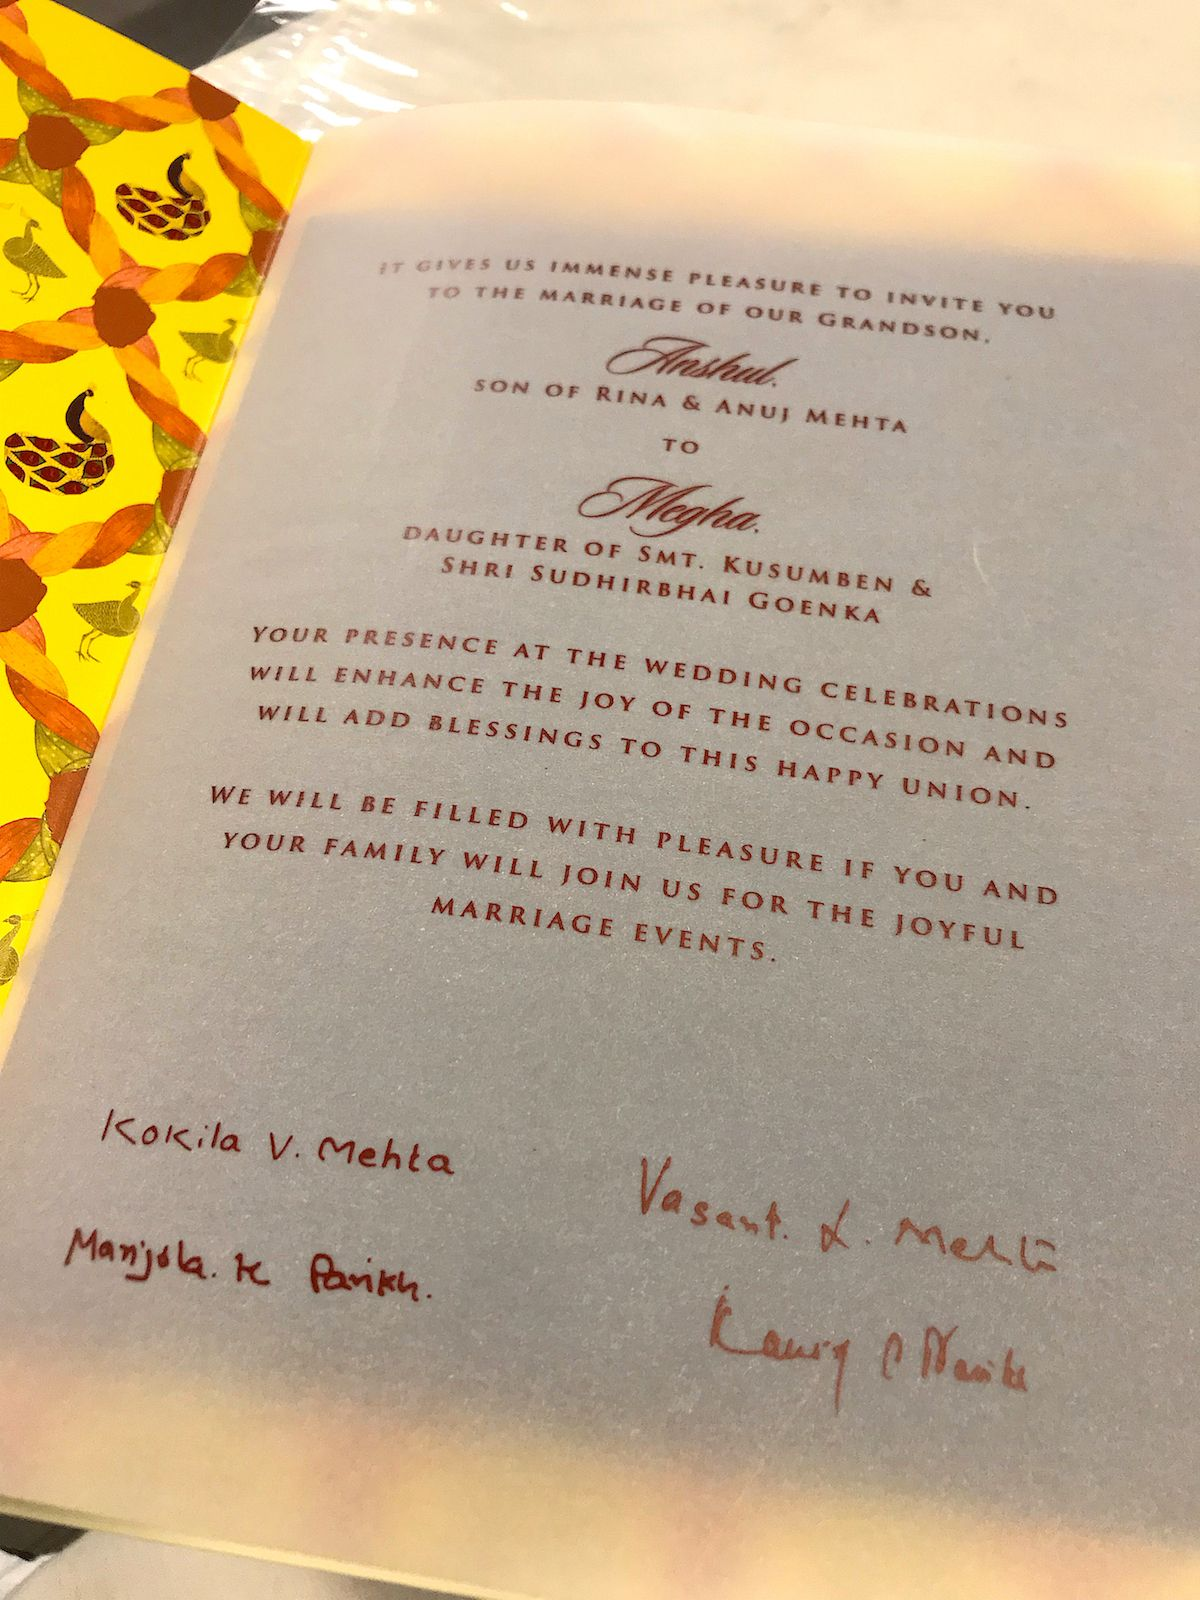 Love Quotes For Indian Wedding Invitation In 2020 Indian Wedding Invitation Wording Wedding Invitation Format Hindu Wedding Invitation Wording